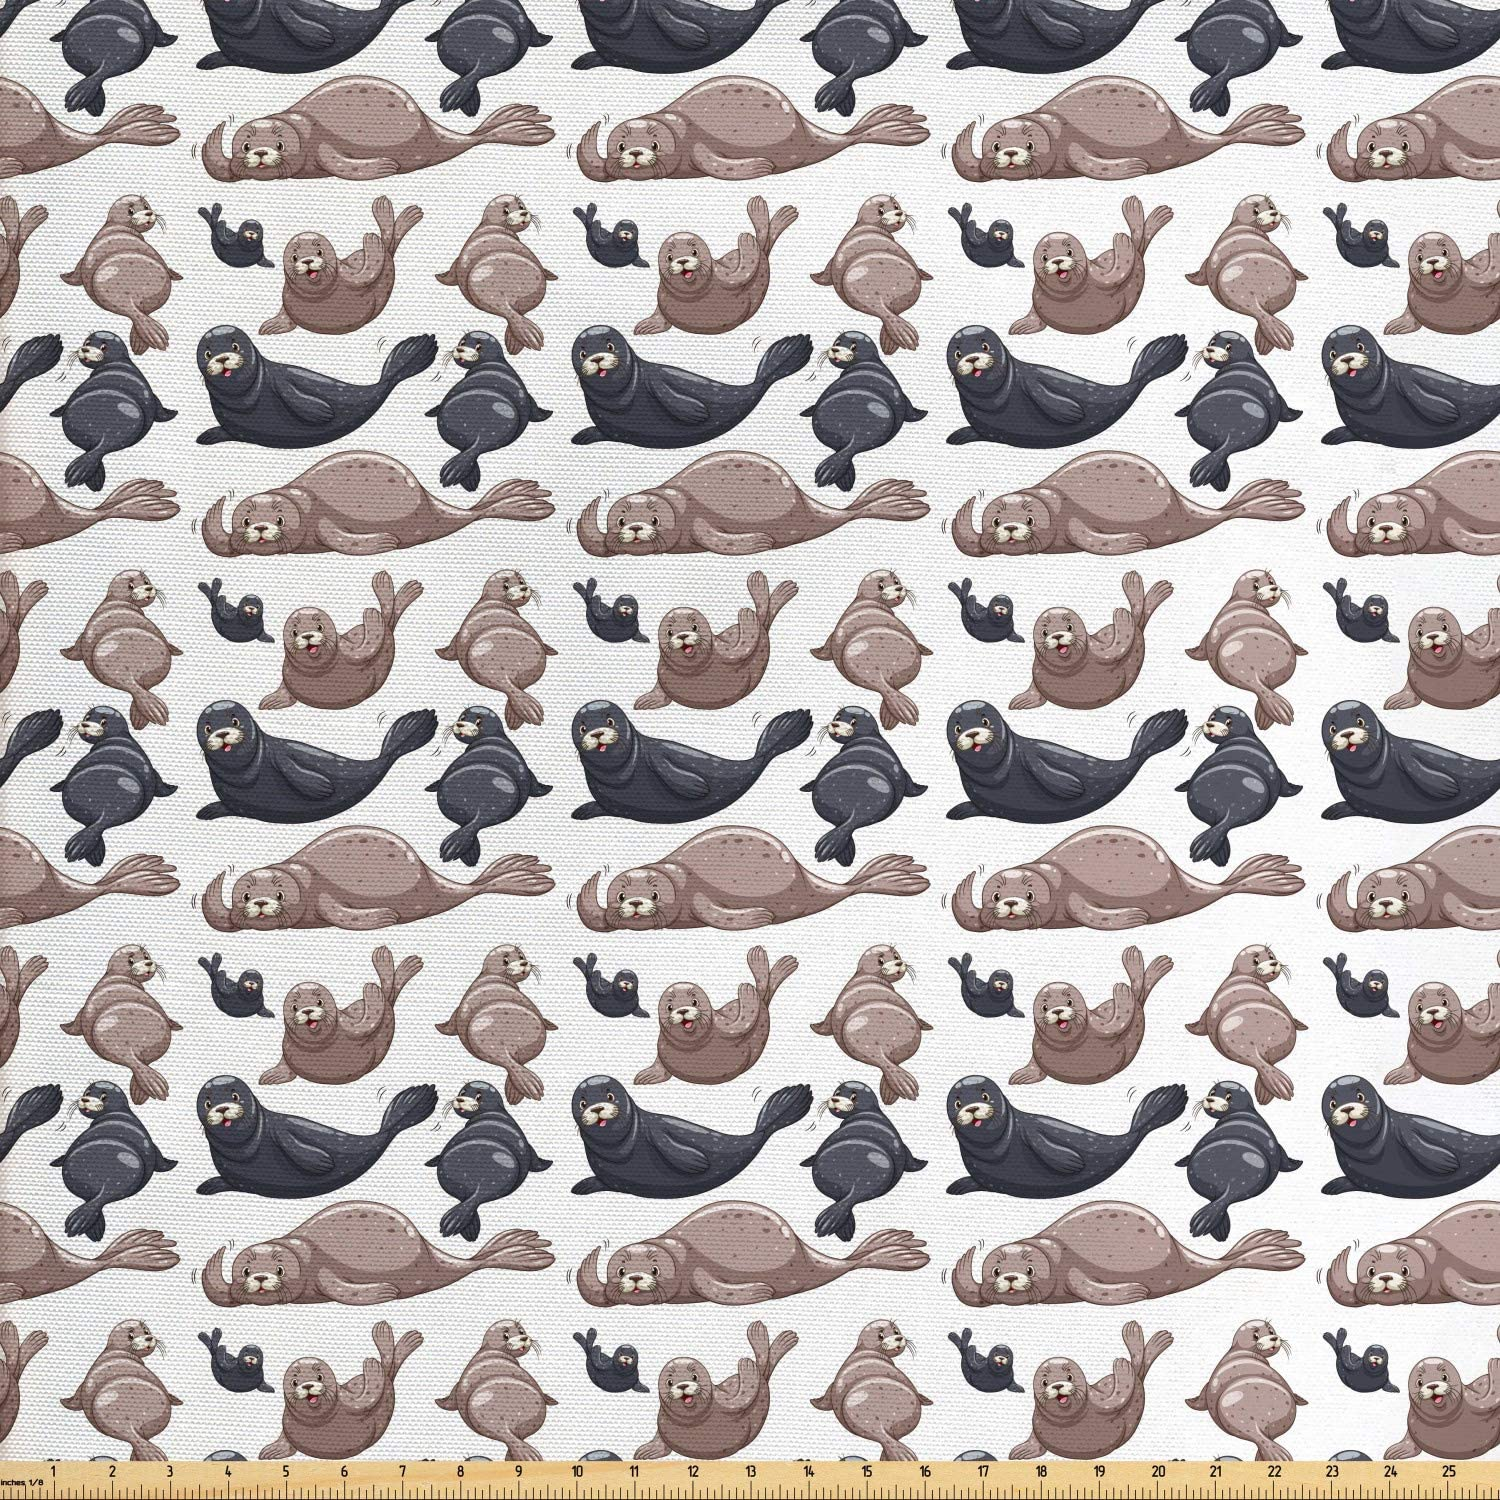 Ambesonne Sea Animals Fabric by The Yard, Seals Illustration Sea Lion Exotic Tropical Comic Graphic Wild Ocean, Decorative Fabric for Upholstery and Home Accents, 1 Yard, Blue Taupe